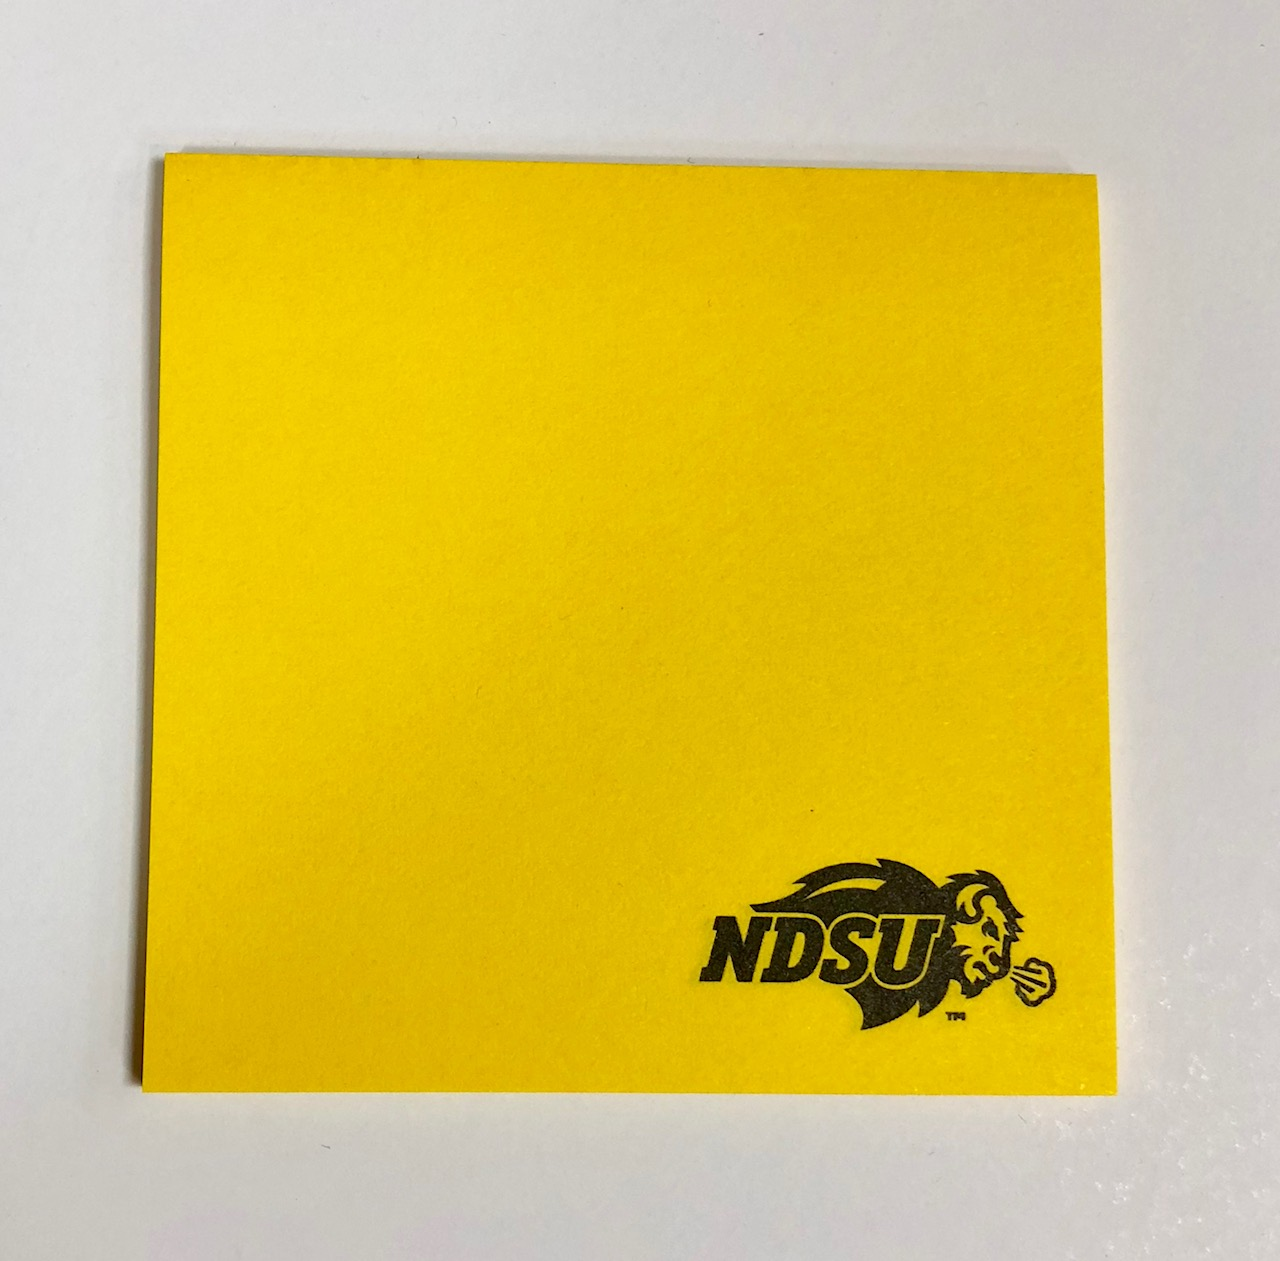 Image For NDSU POST-IT NOTES